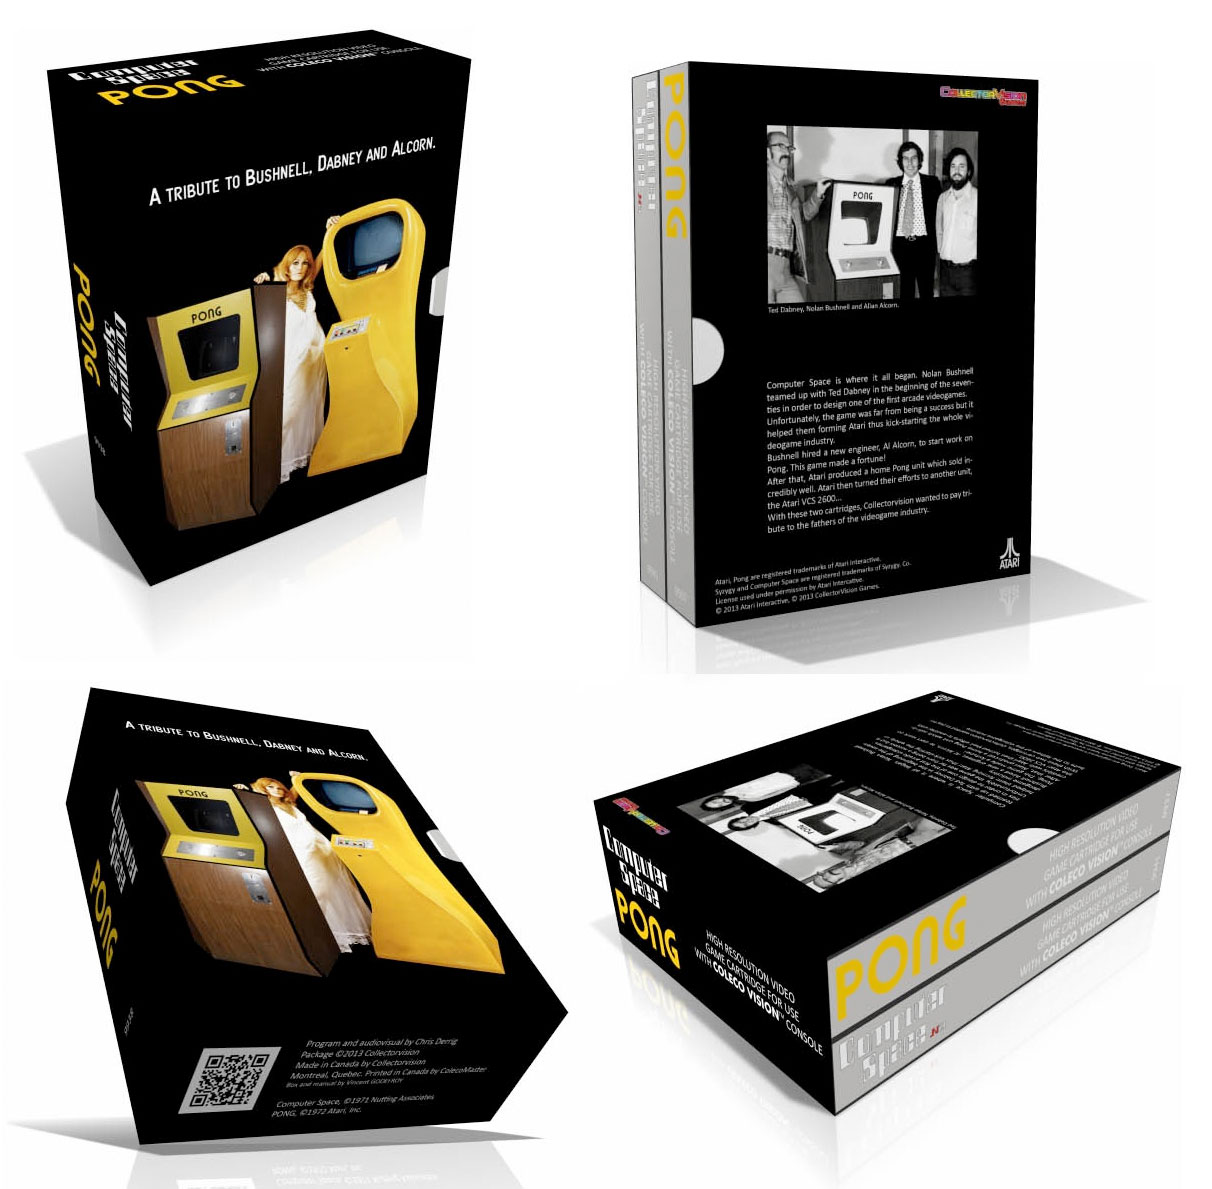 CollectorVision presents the #Pong & Computer Space Box Set for